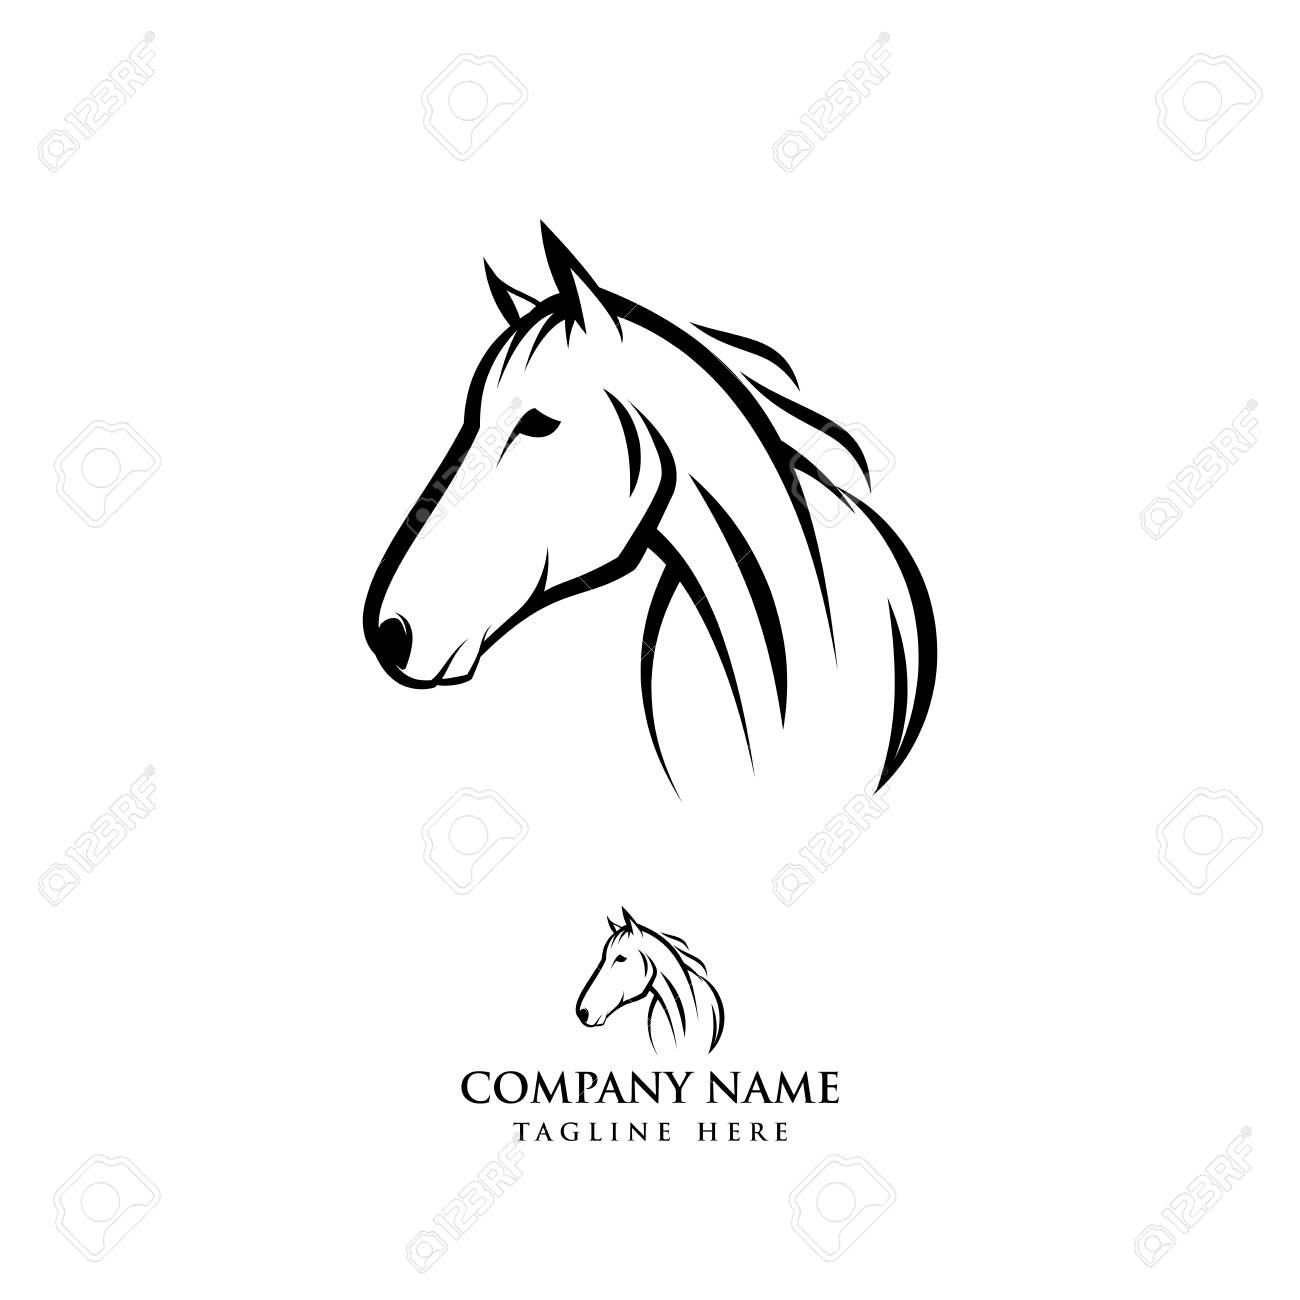 Horse Logo Design Illustration Horse Silhouette Vector Horse Royalty Free Cliparts Vectors And Stock Illustration Image 118779260